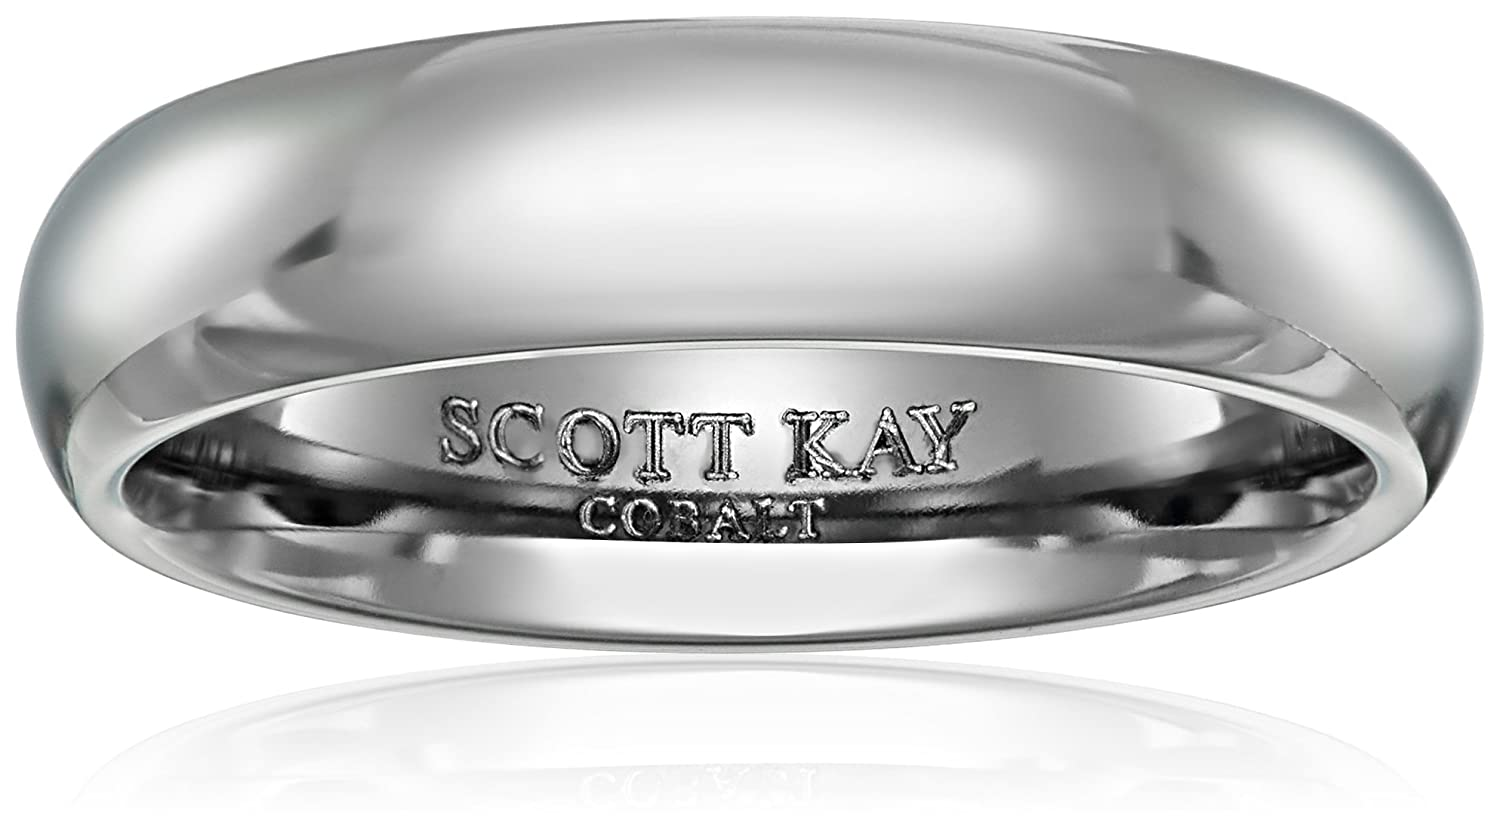 Men's Scott Kay Cobalt Prime Grey Dome Band With Stone Design And Bright Finish Wedding Bands Amazon: Scott Kay Prime Cobalt Wedding Band At Websimilar.org